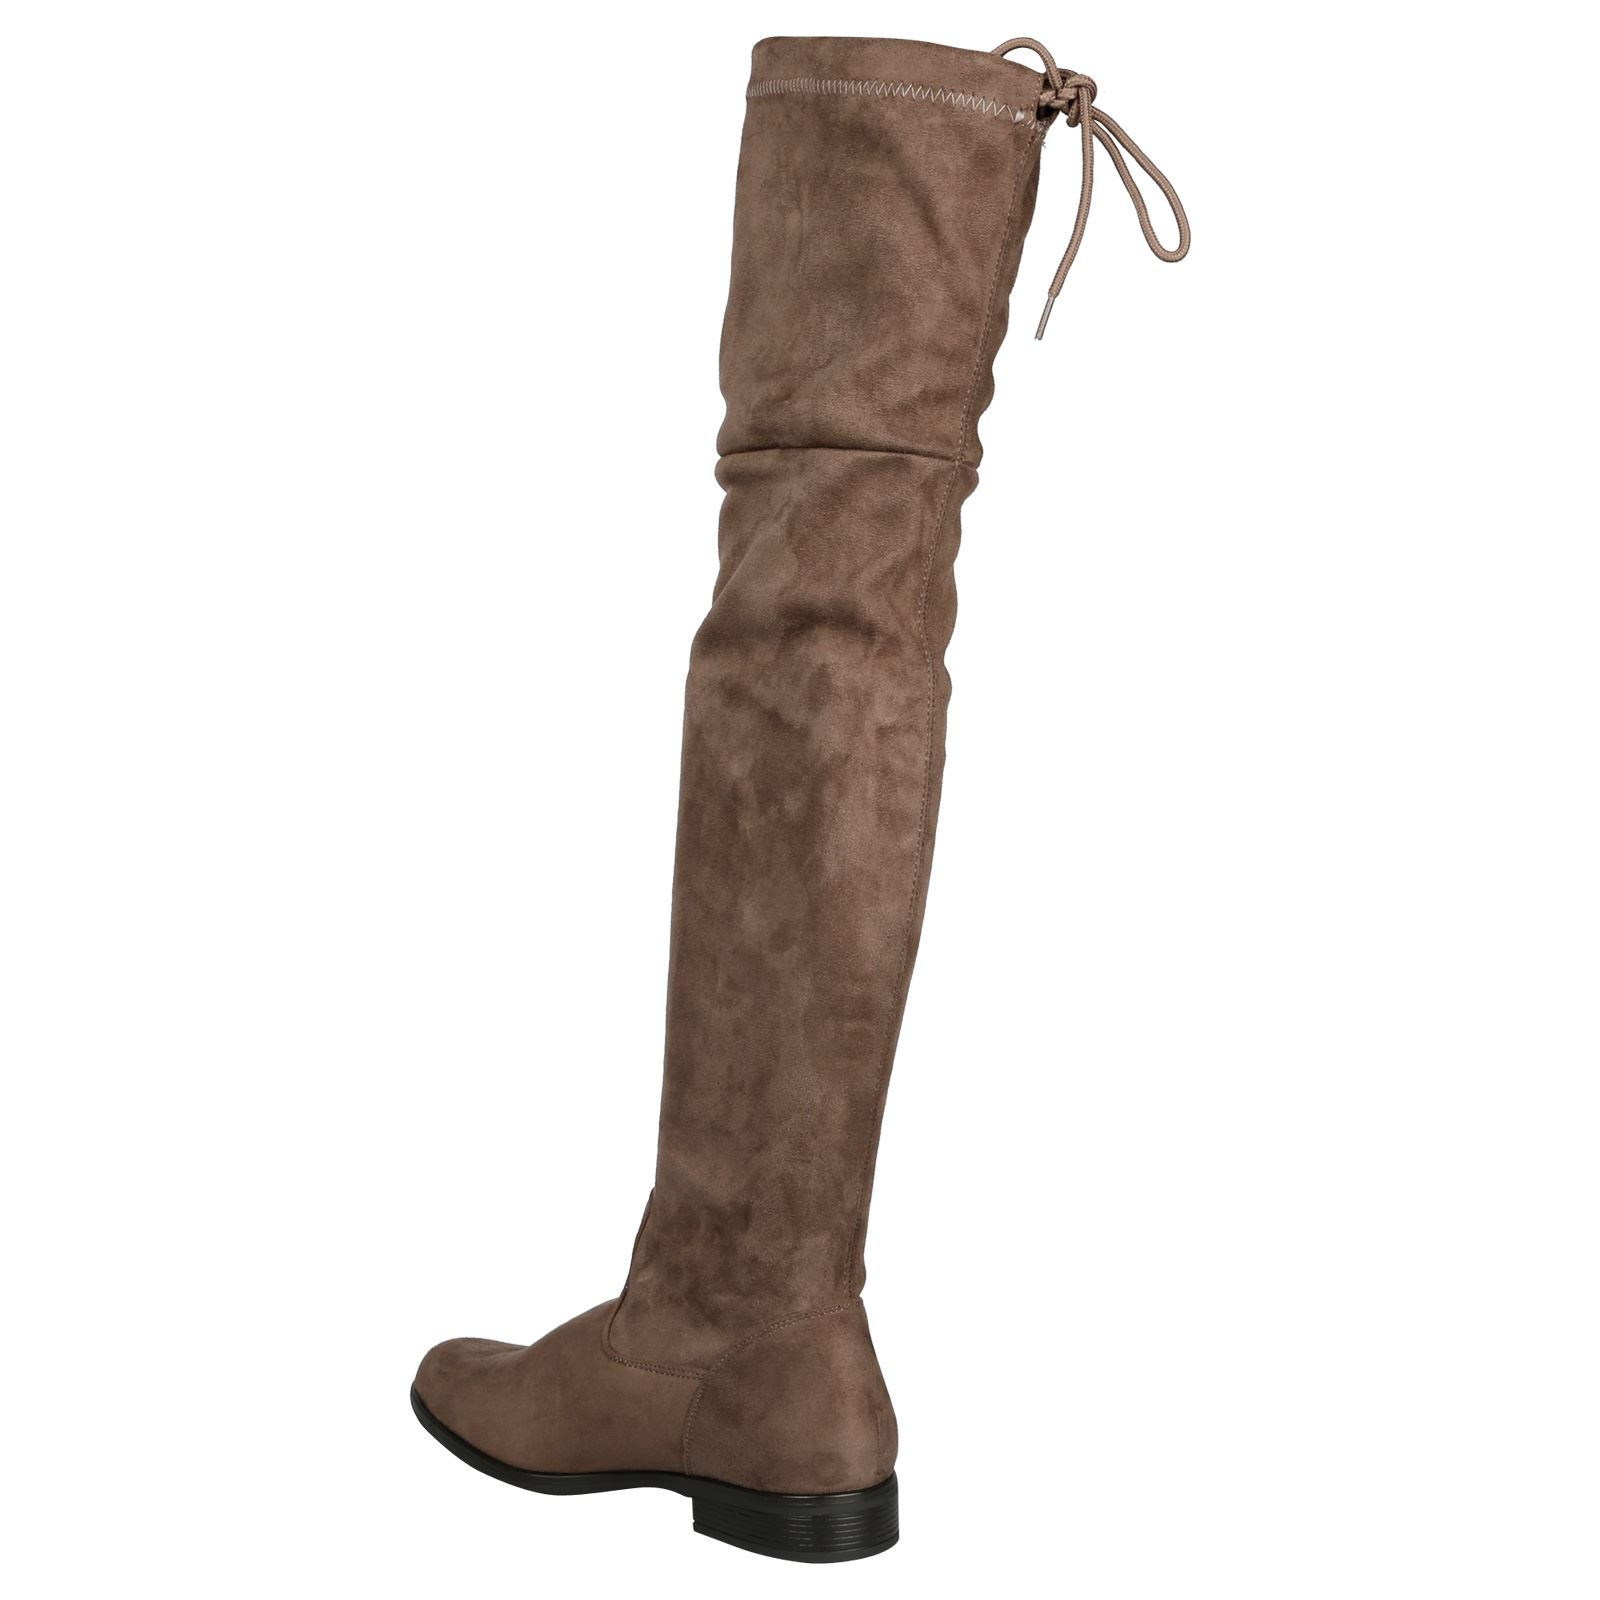 Anabelle Womens Over-the-knee Boots Low Heel Flat Comfy Adjustable Fit Casual